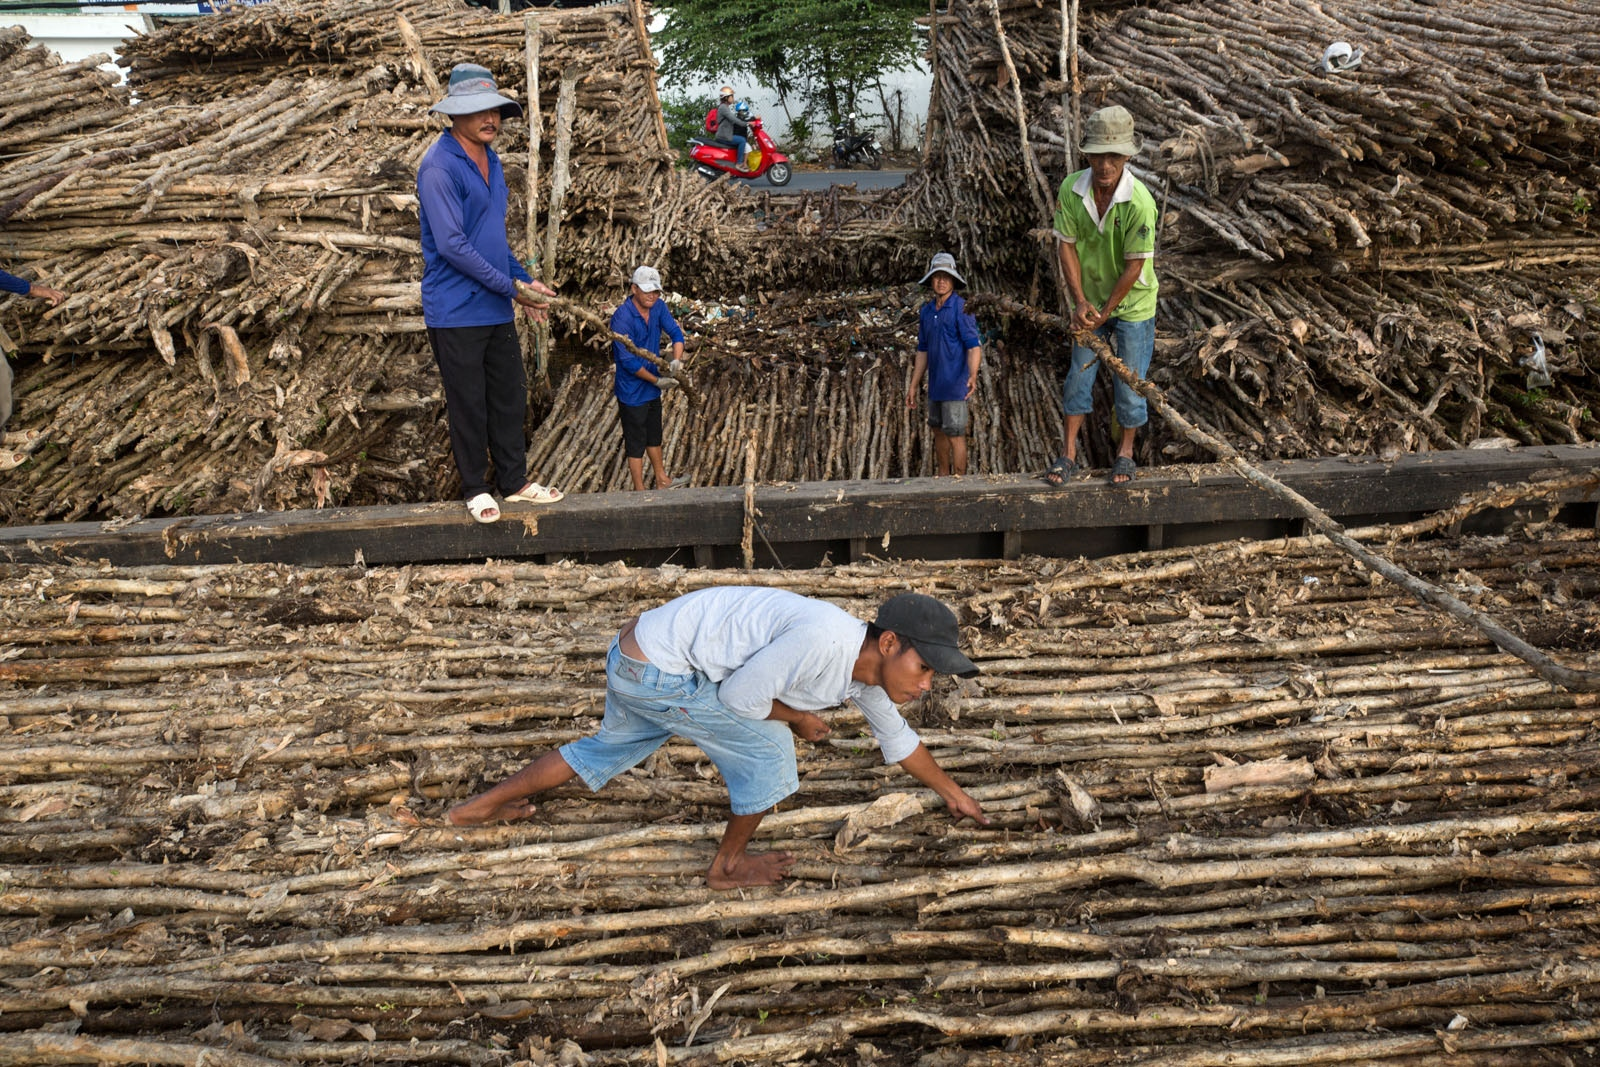 Workers unload a large barge laden to the brim with wooden poles. Transported by river to Can Tho city the poles are sold for use mainly in construction. Whilst roads have replaced a lot of river transportation routes, for larger cargos such as this the river is still the easiest and most economical way to travel.